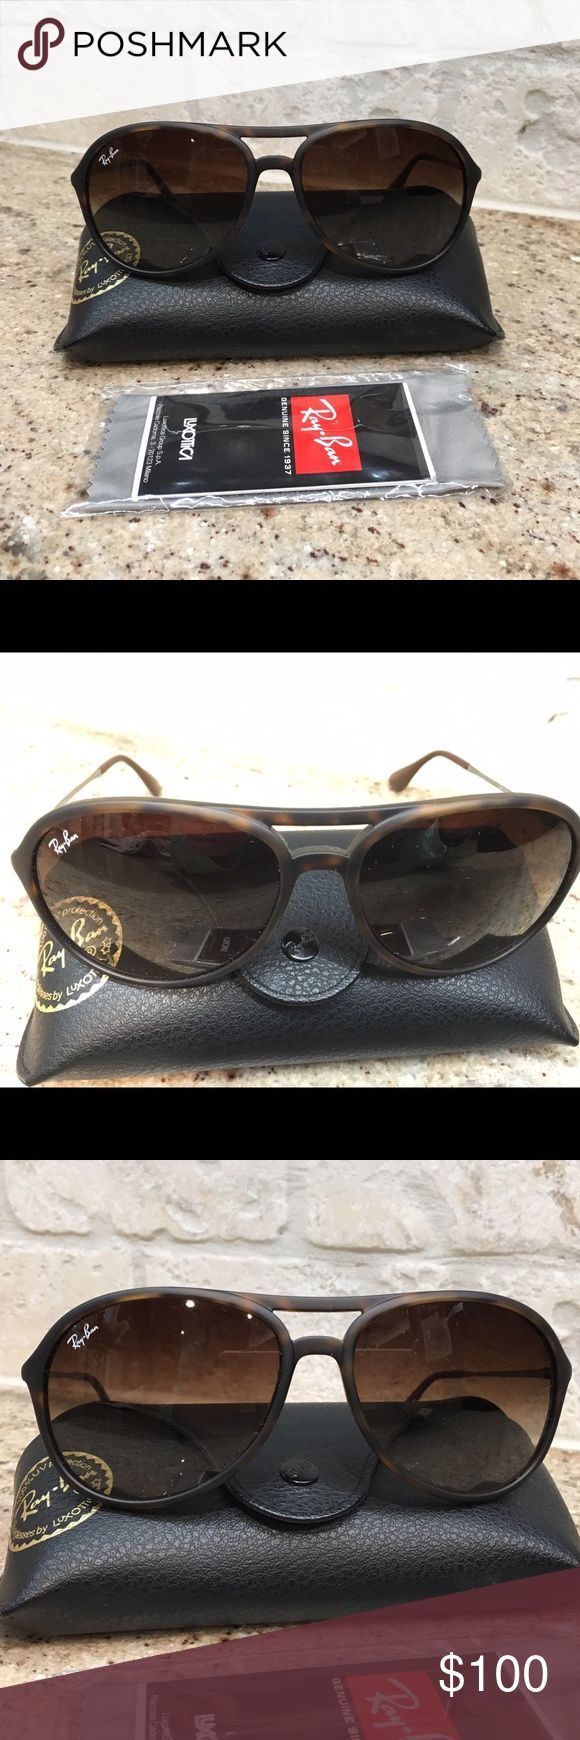 Ray Ban aviator sunglasses Thin matte tortoise color Ray Ban aviator sunglasses. Very lightweight, perfect condition, comes with case, cleaning cloth etc. no stretches. Ray-Ban Accessories Sunglasses